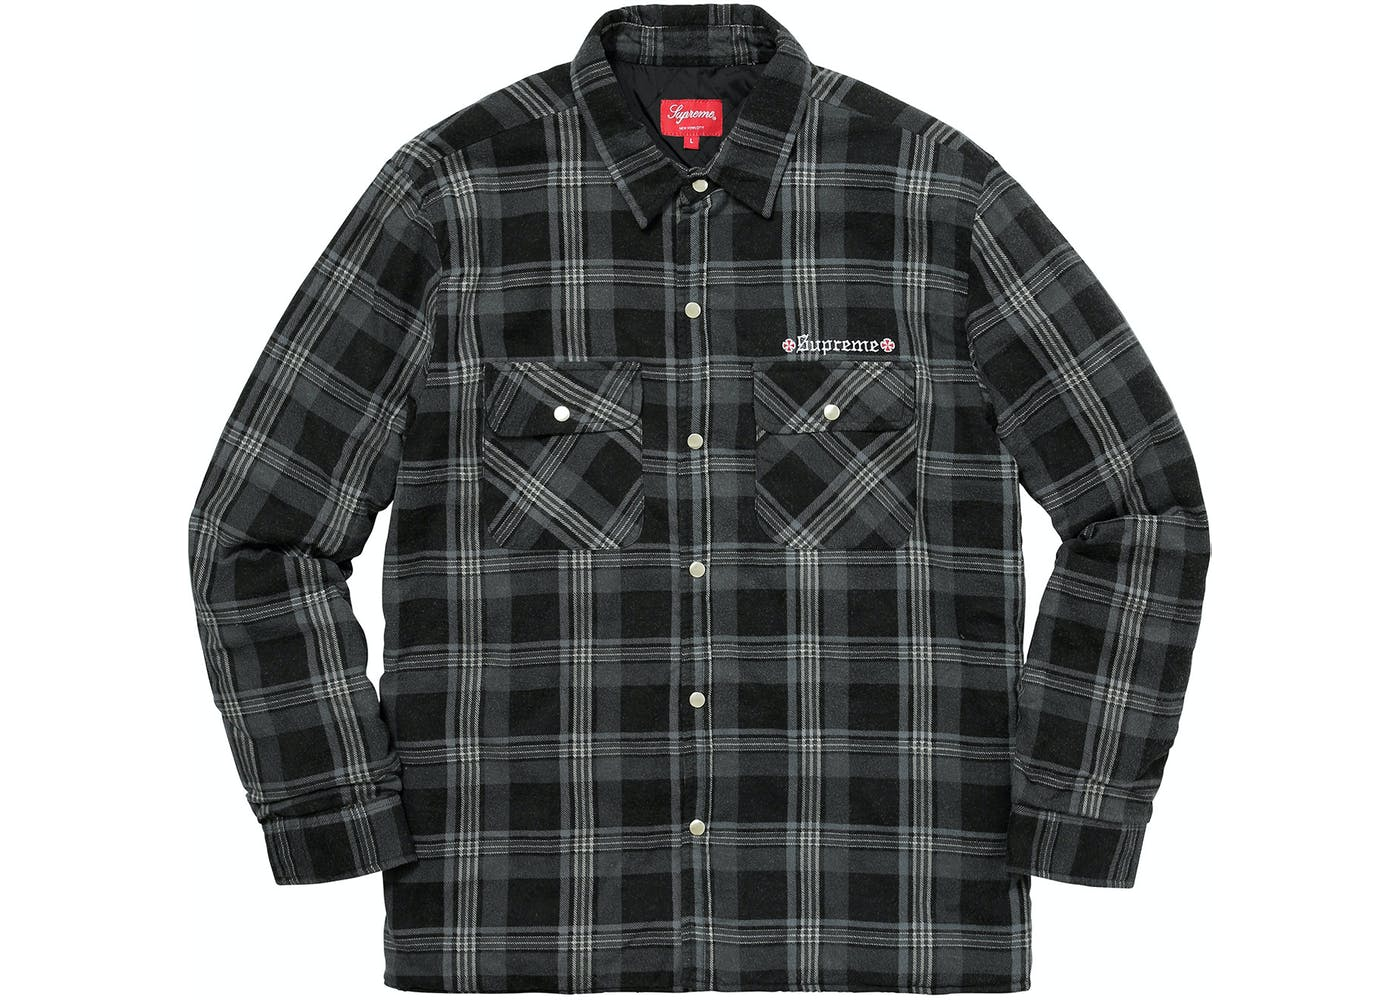 Independent Quilted Flannel Shirt Black : quilted flannel shirt jacket - Adamdwight.com